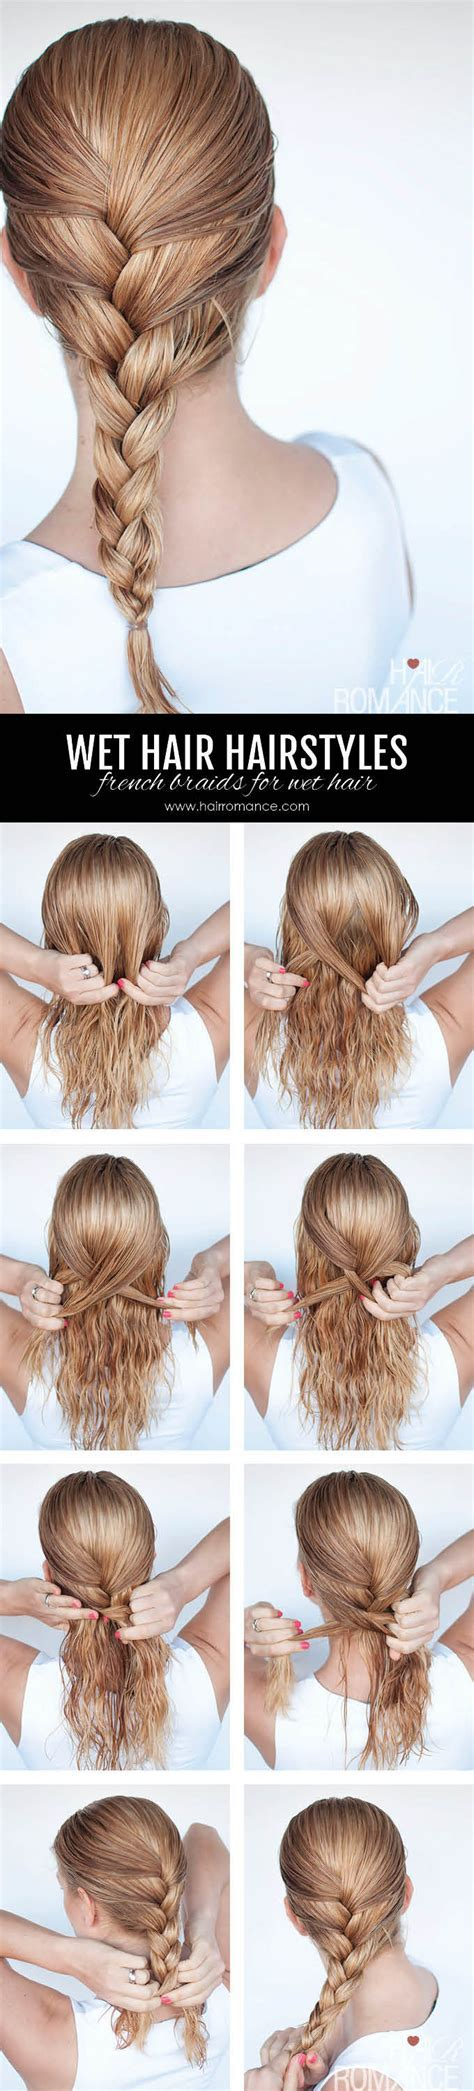 Hairstyles for wet hair: 3 simple braid tutorials you can